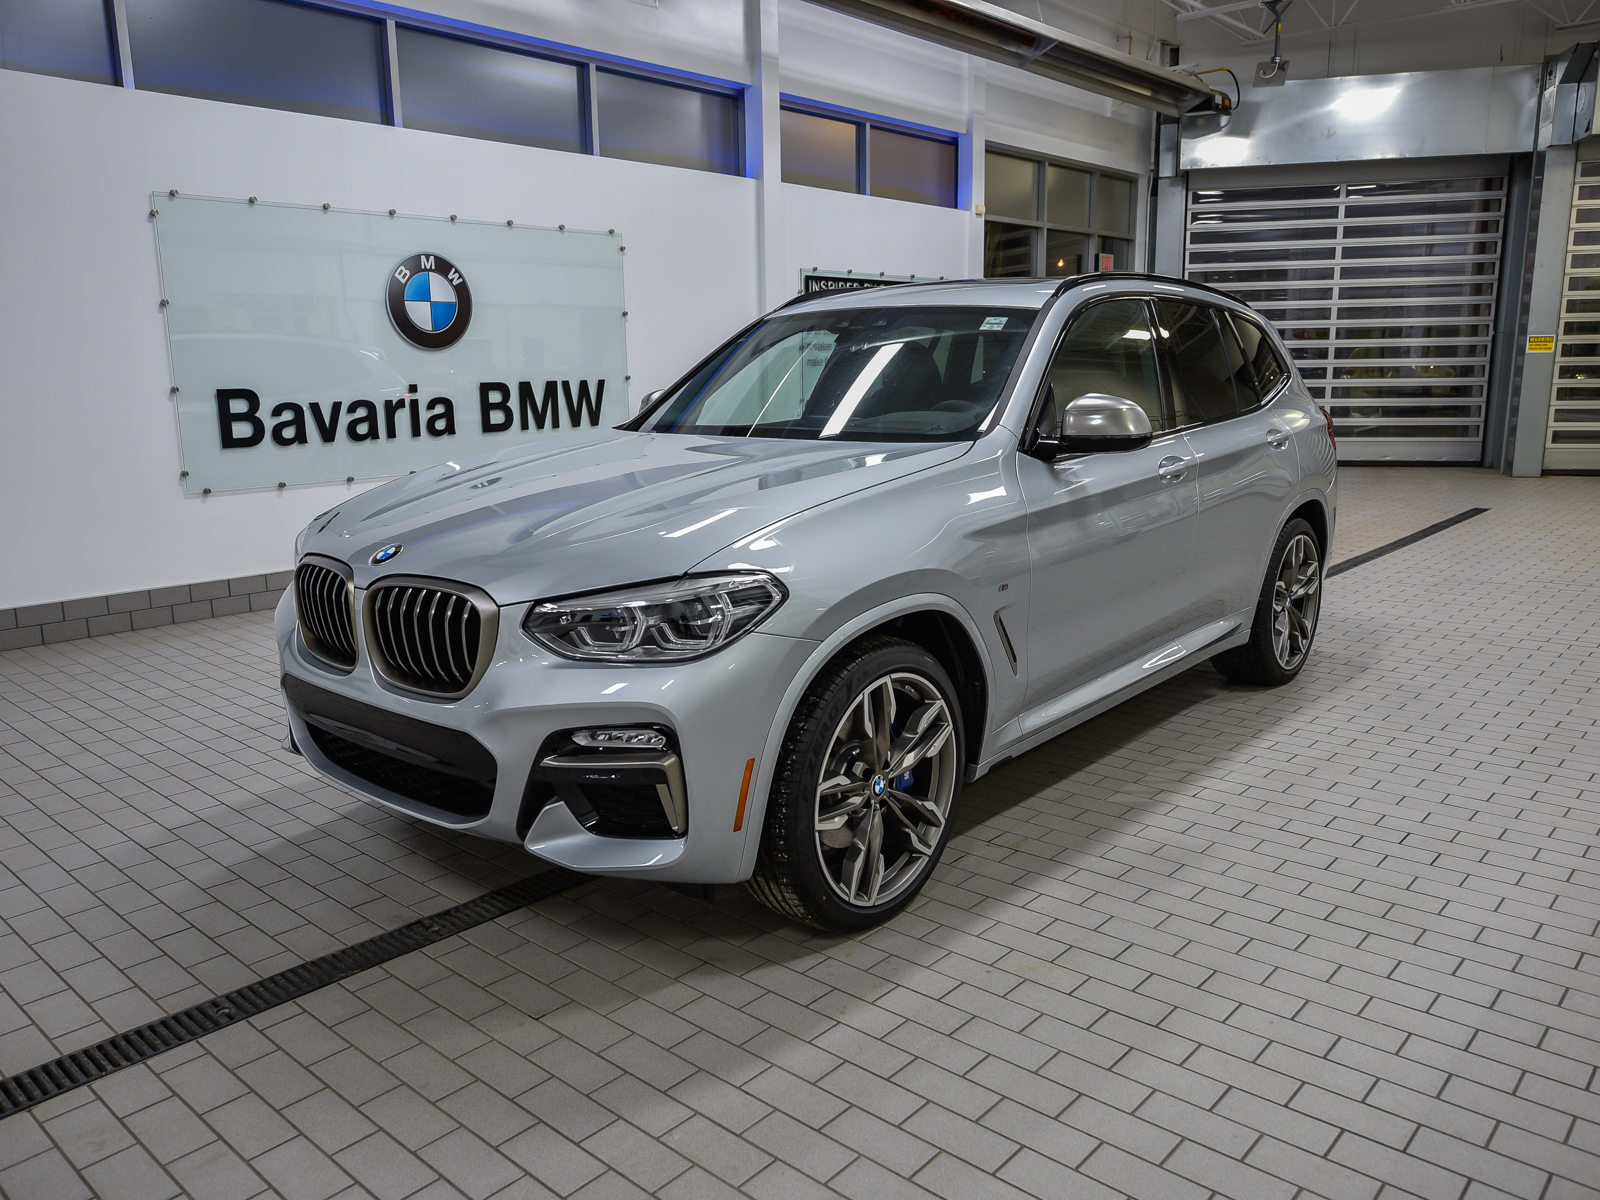 New 2019 Bmw X3 M40i Crossover In Edmonton 19x34119 Bavaria Bmw